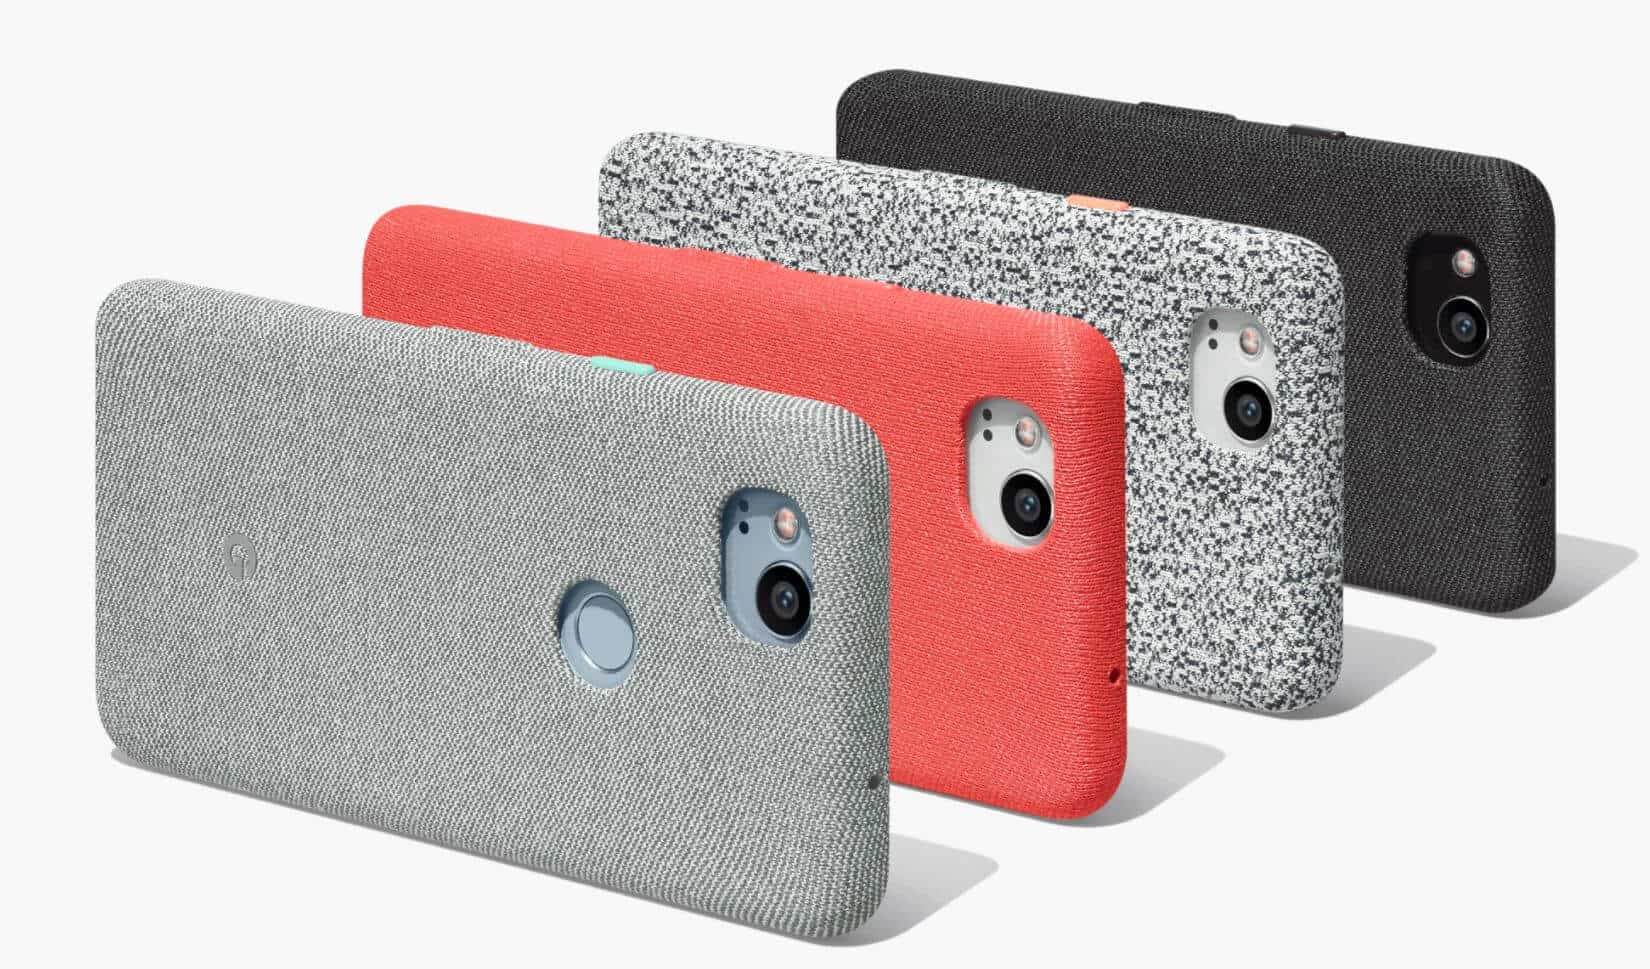 timeless design 8b7e9 69838 Official Pixel 2 | Pixel 2 XL Case - Fabric